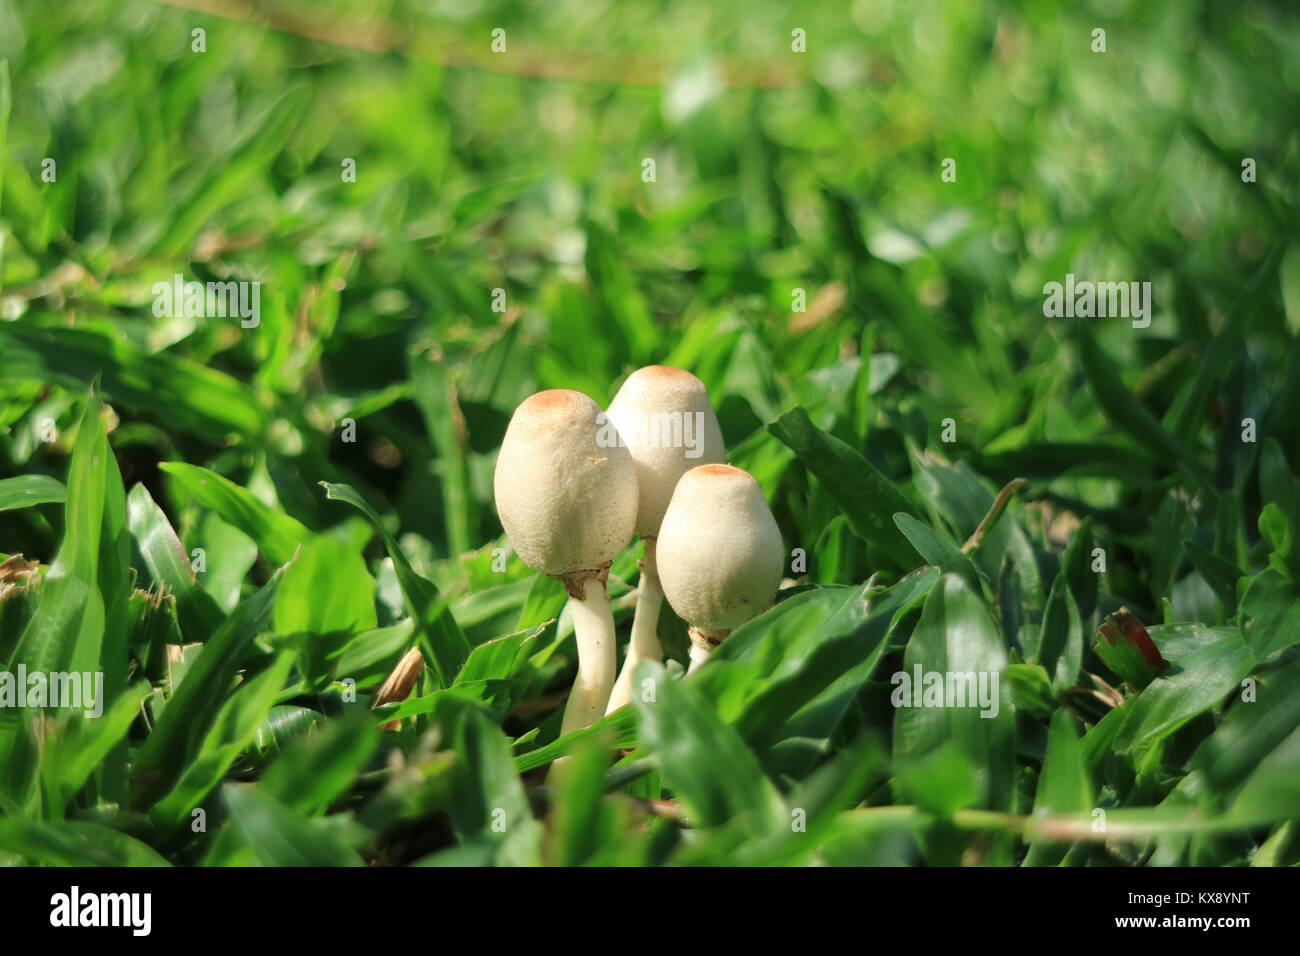 Closed up three little wild white mushrooms growing together on vibrant green grass in the sunlight, Thailand Stock Photo